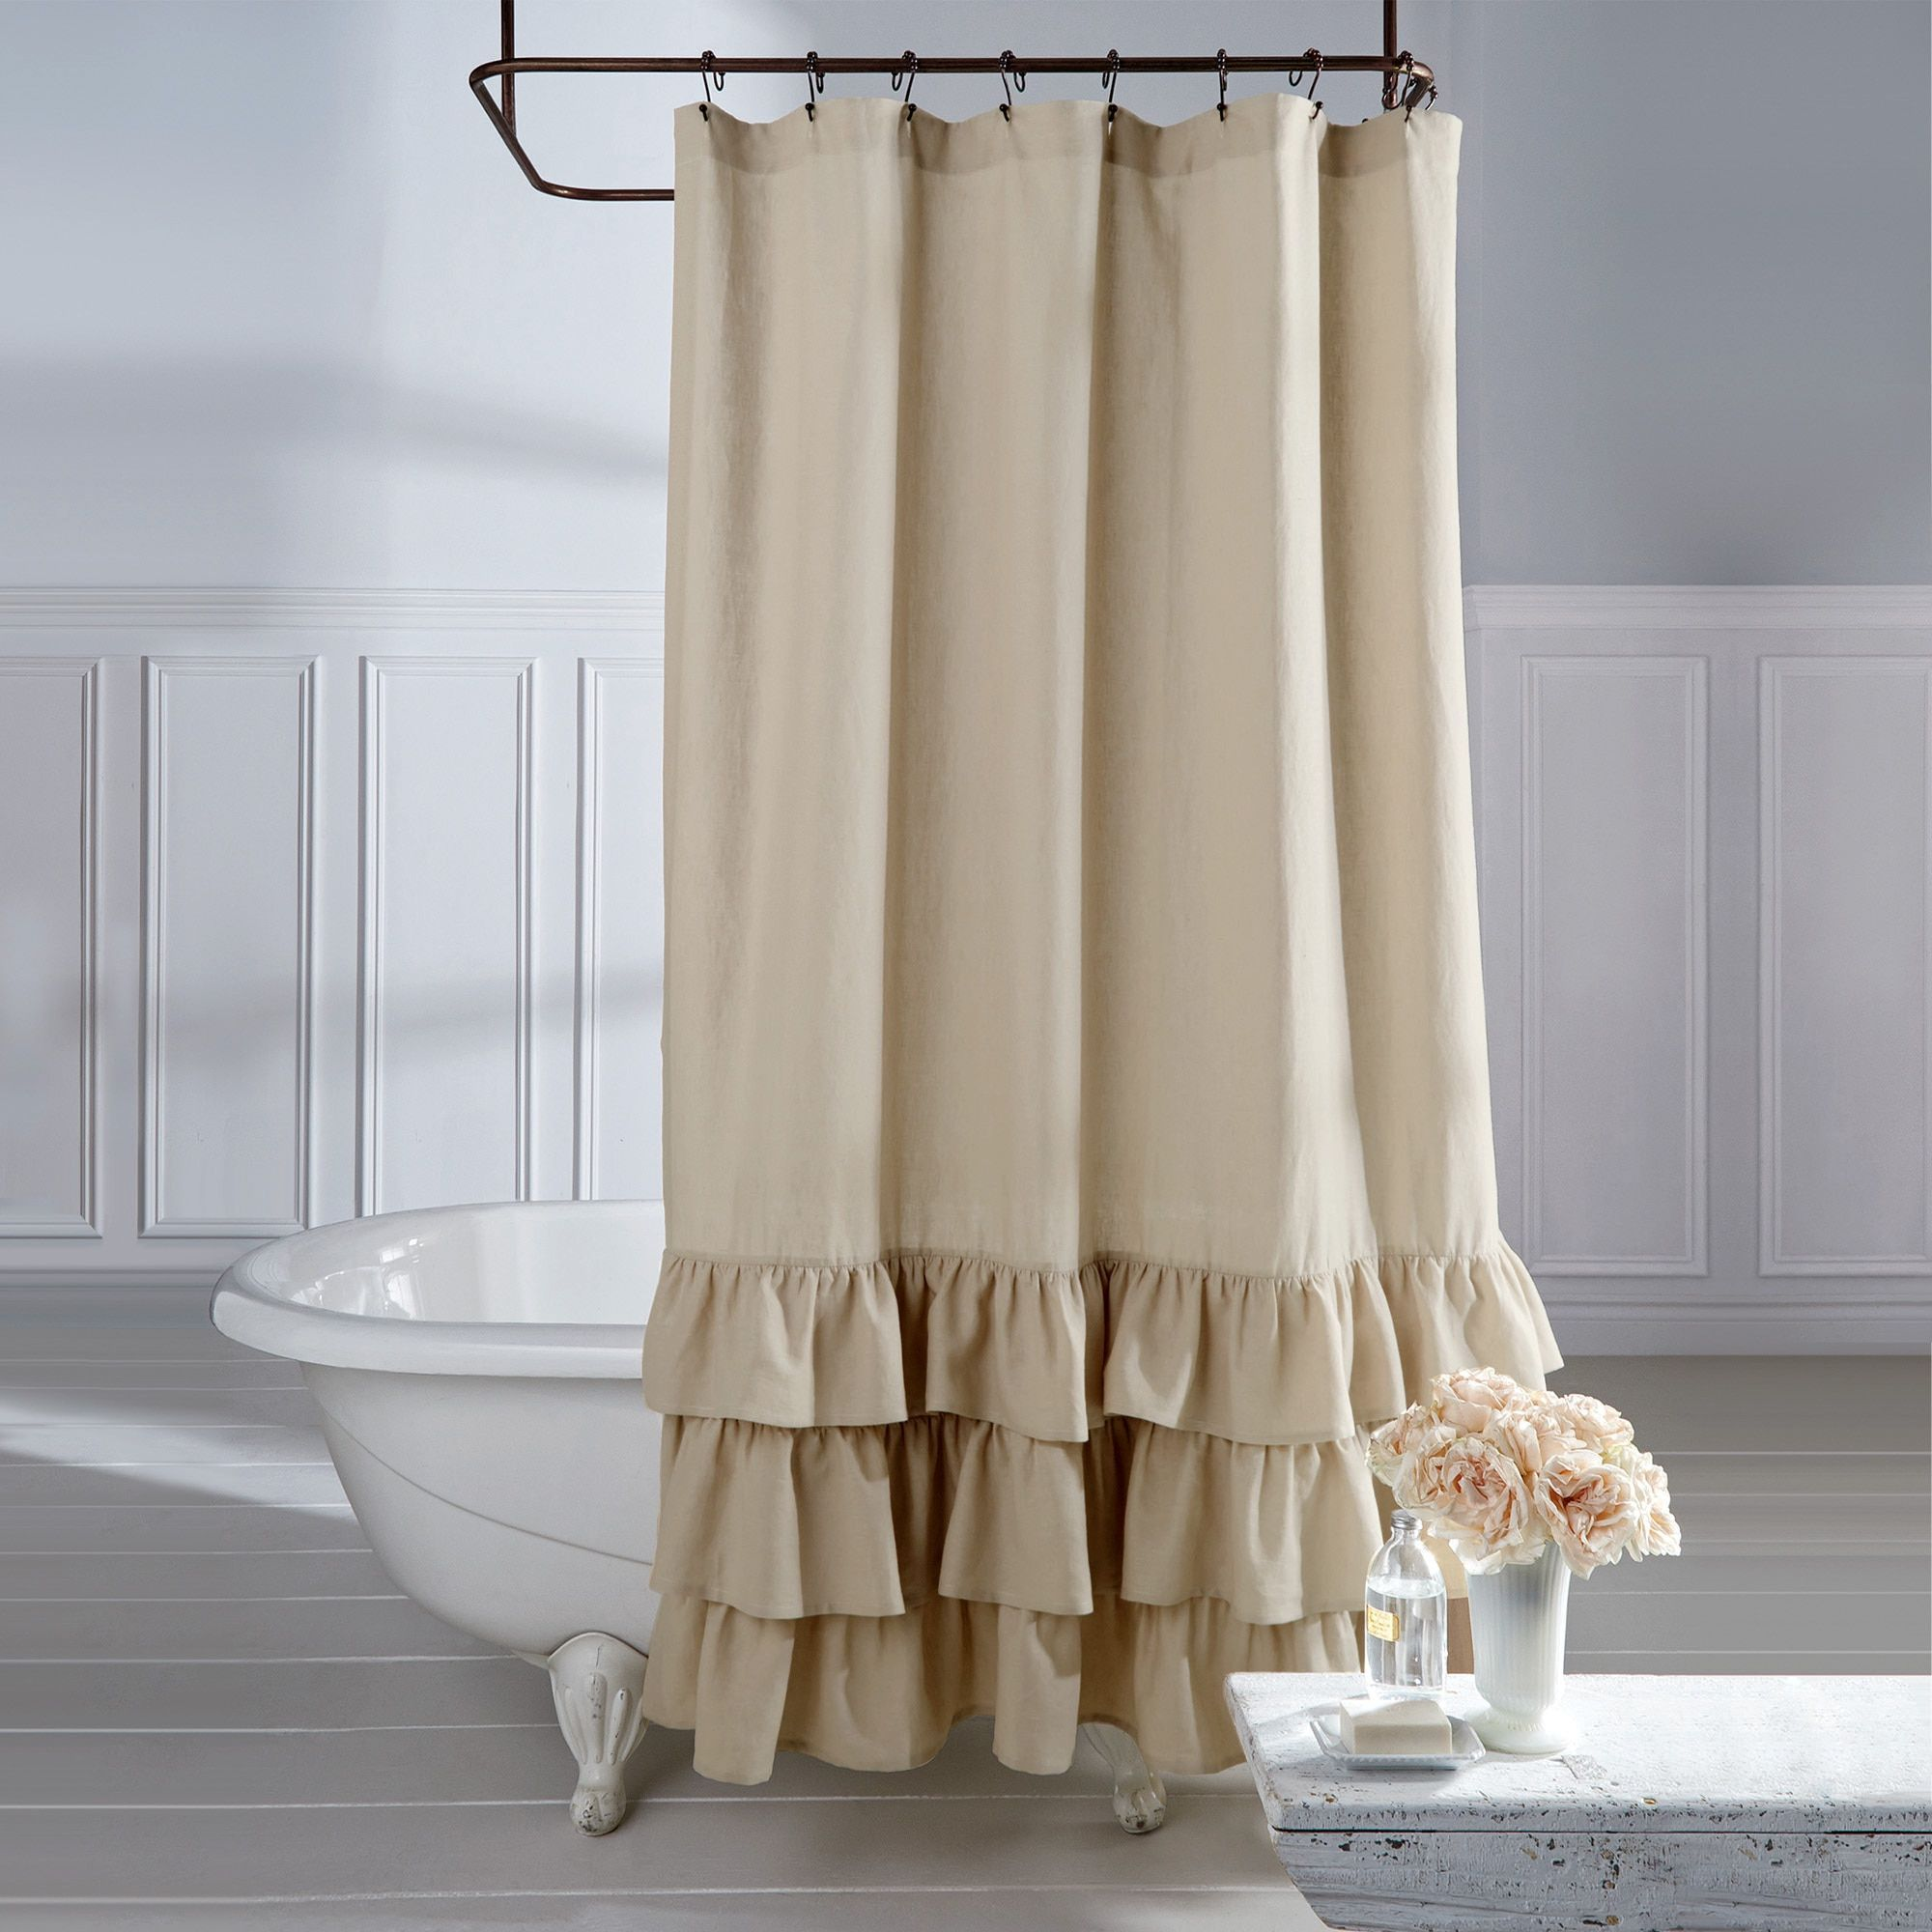 Curtain Deals Veratex Linen Vintage Ruffle Shower Curtain Overstock